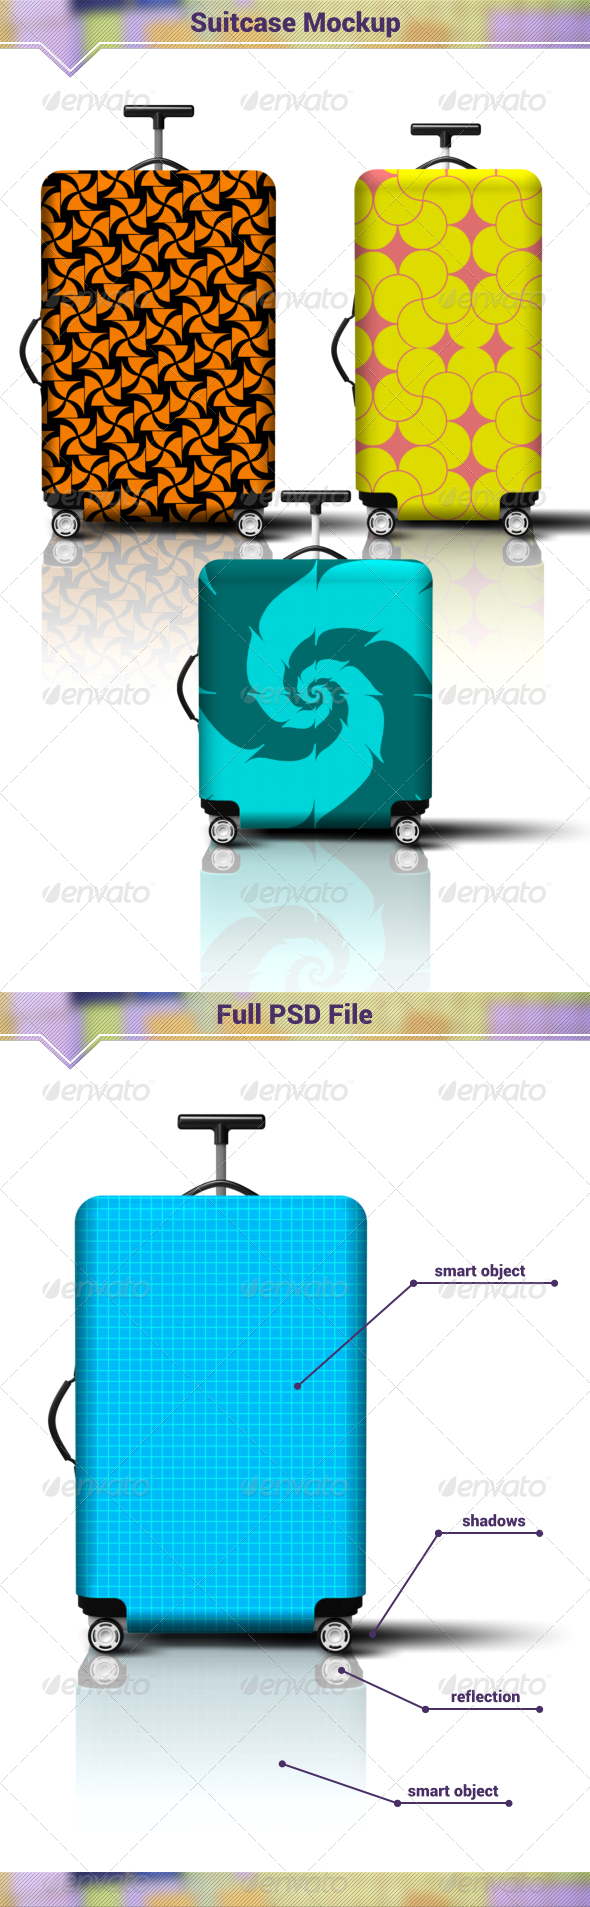 GraphicRiver Suitcase Mockup 8027842